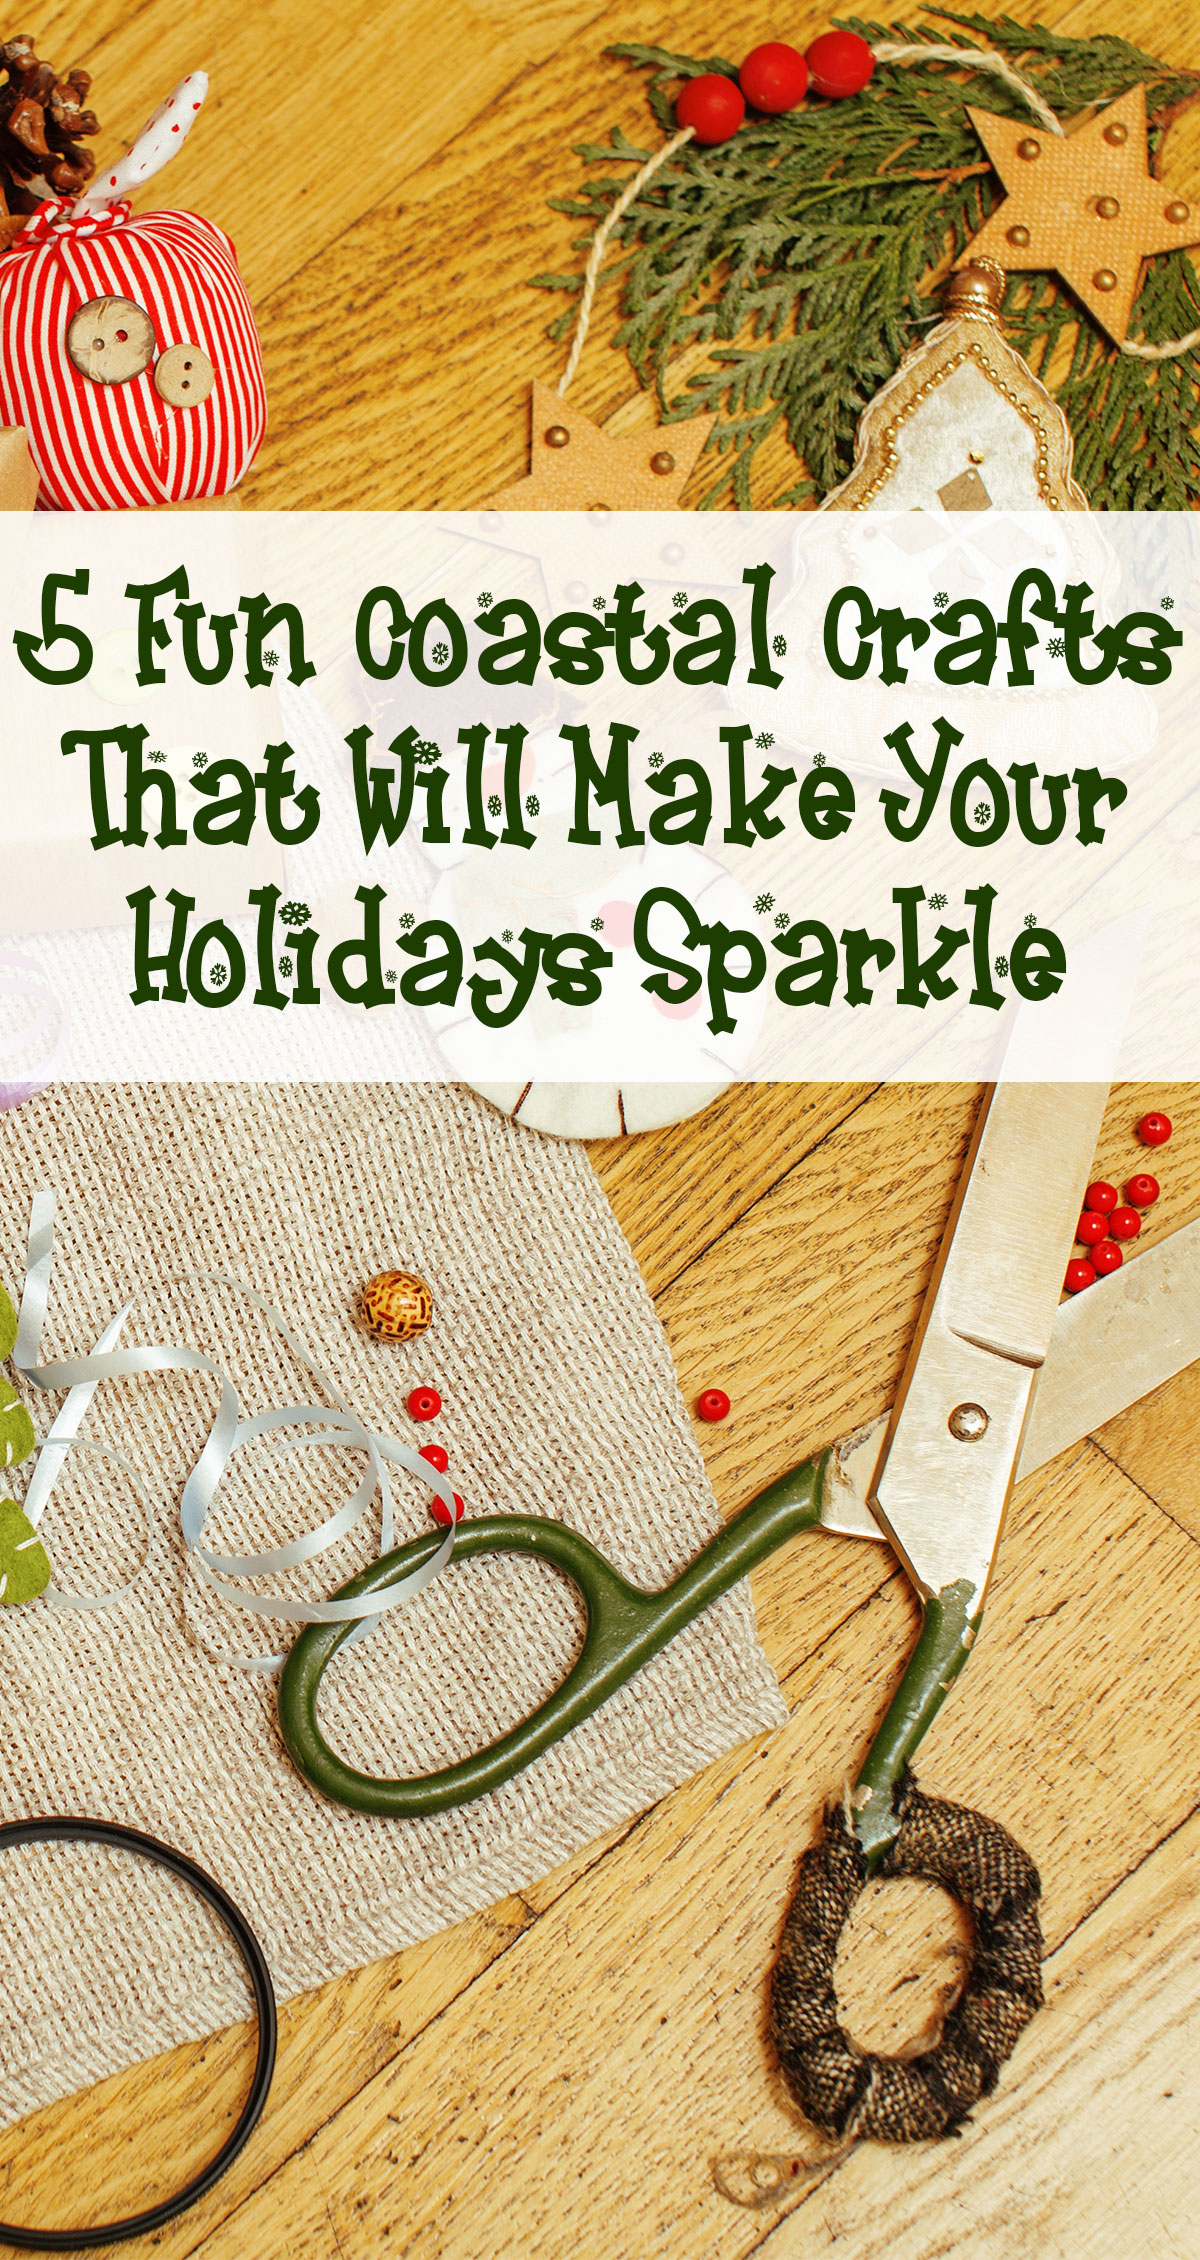 5 Fun Coastal Crafts That Will Make Your Holidays Sparkle Pin